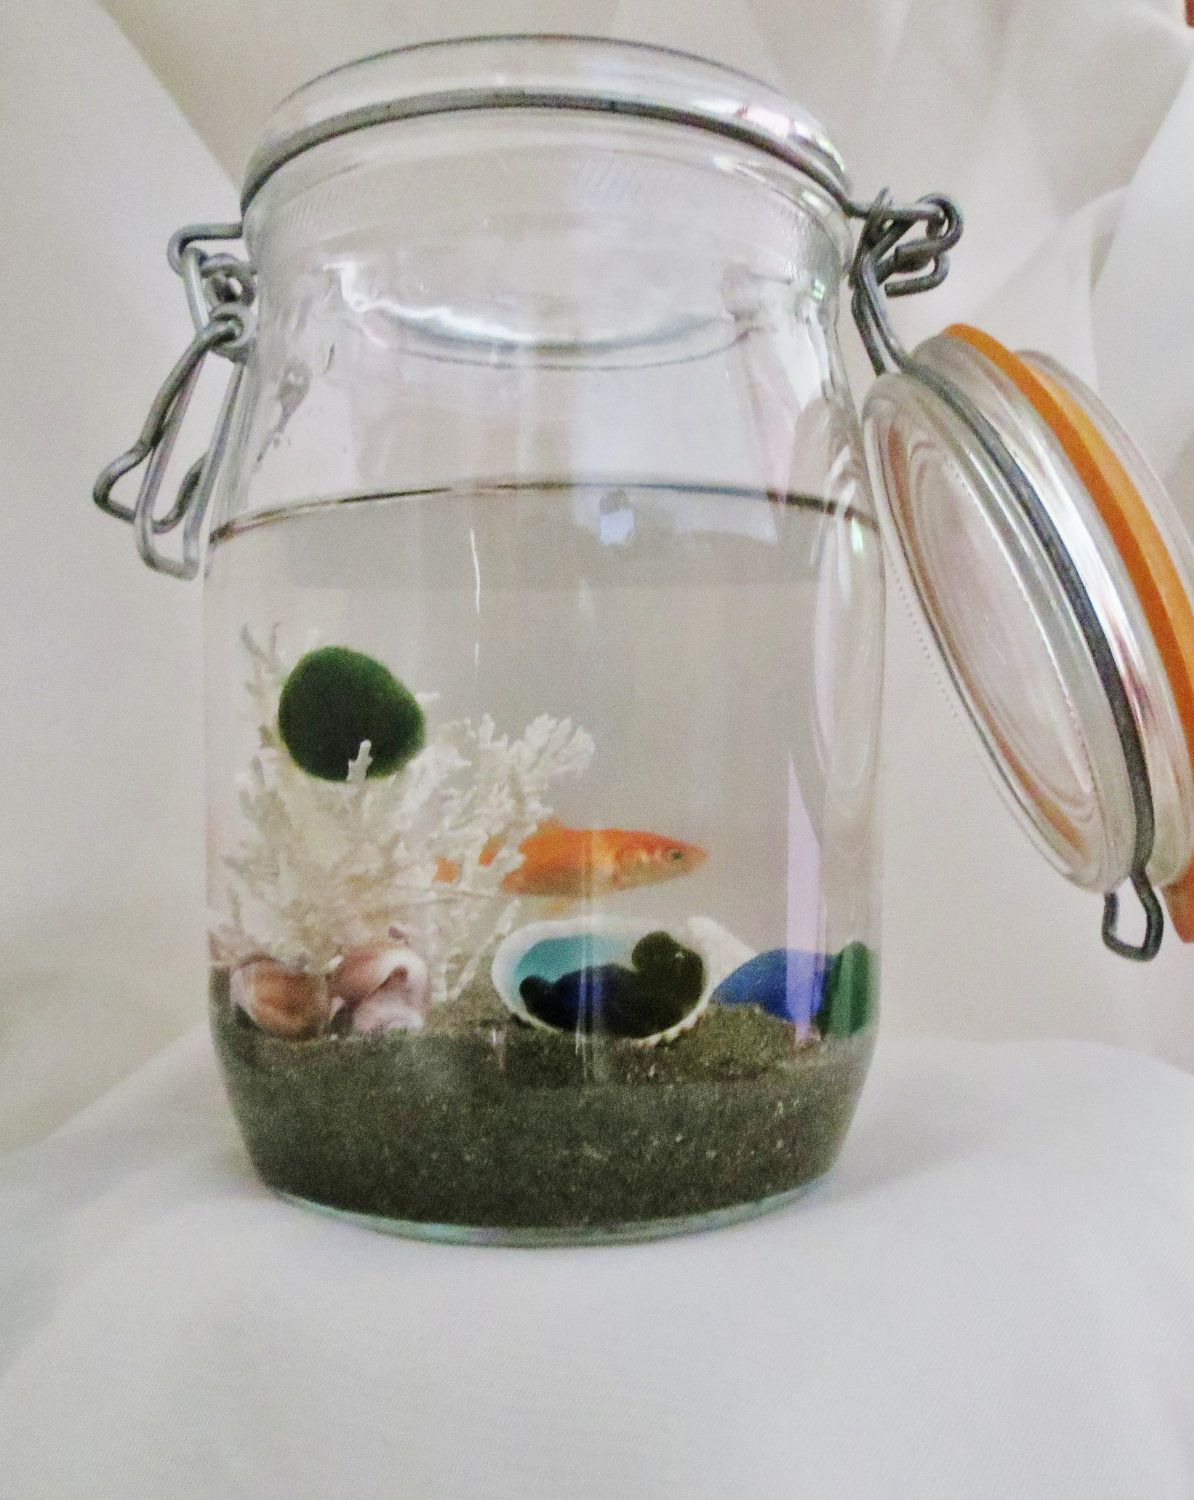 Marimo ball aquarium kit pet marimo marimo moss ball terrarium kit